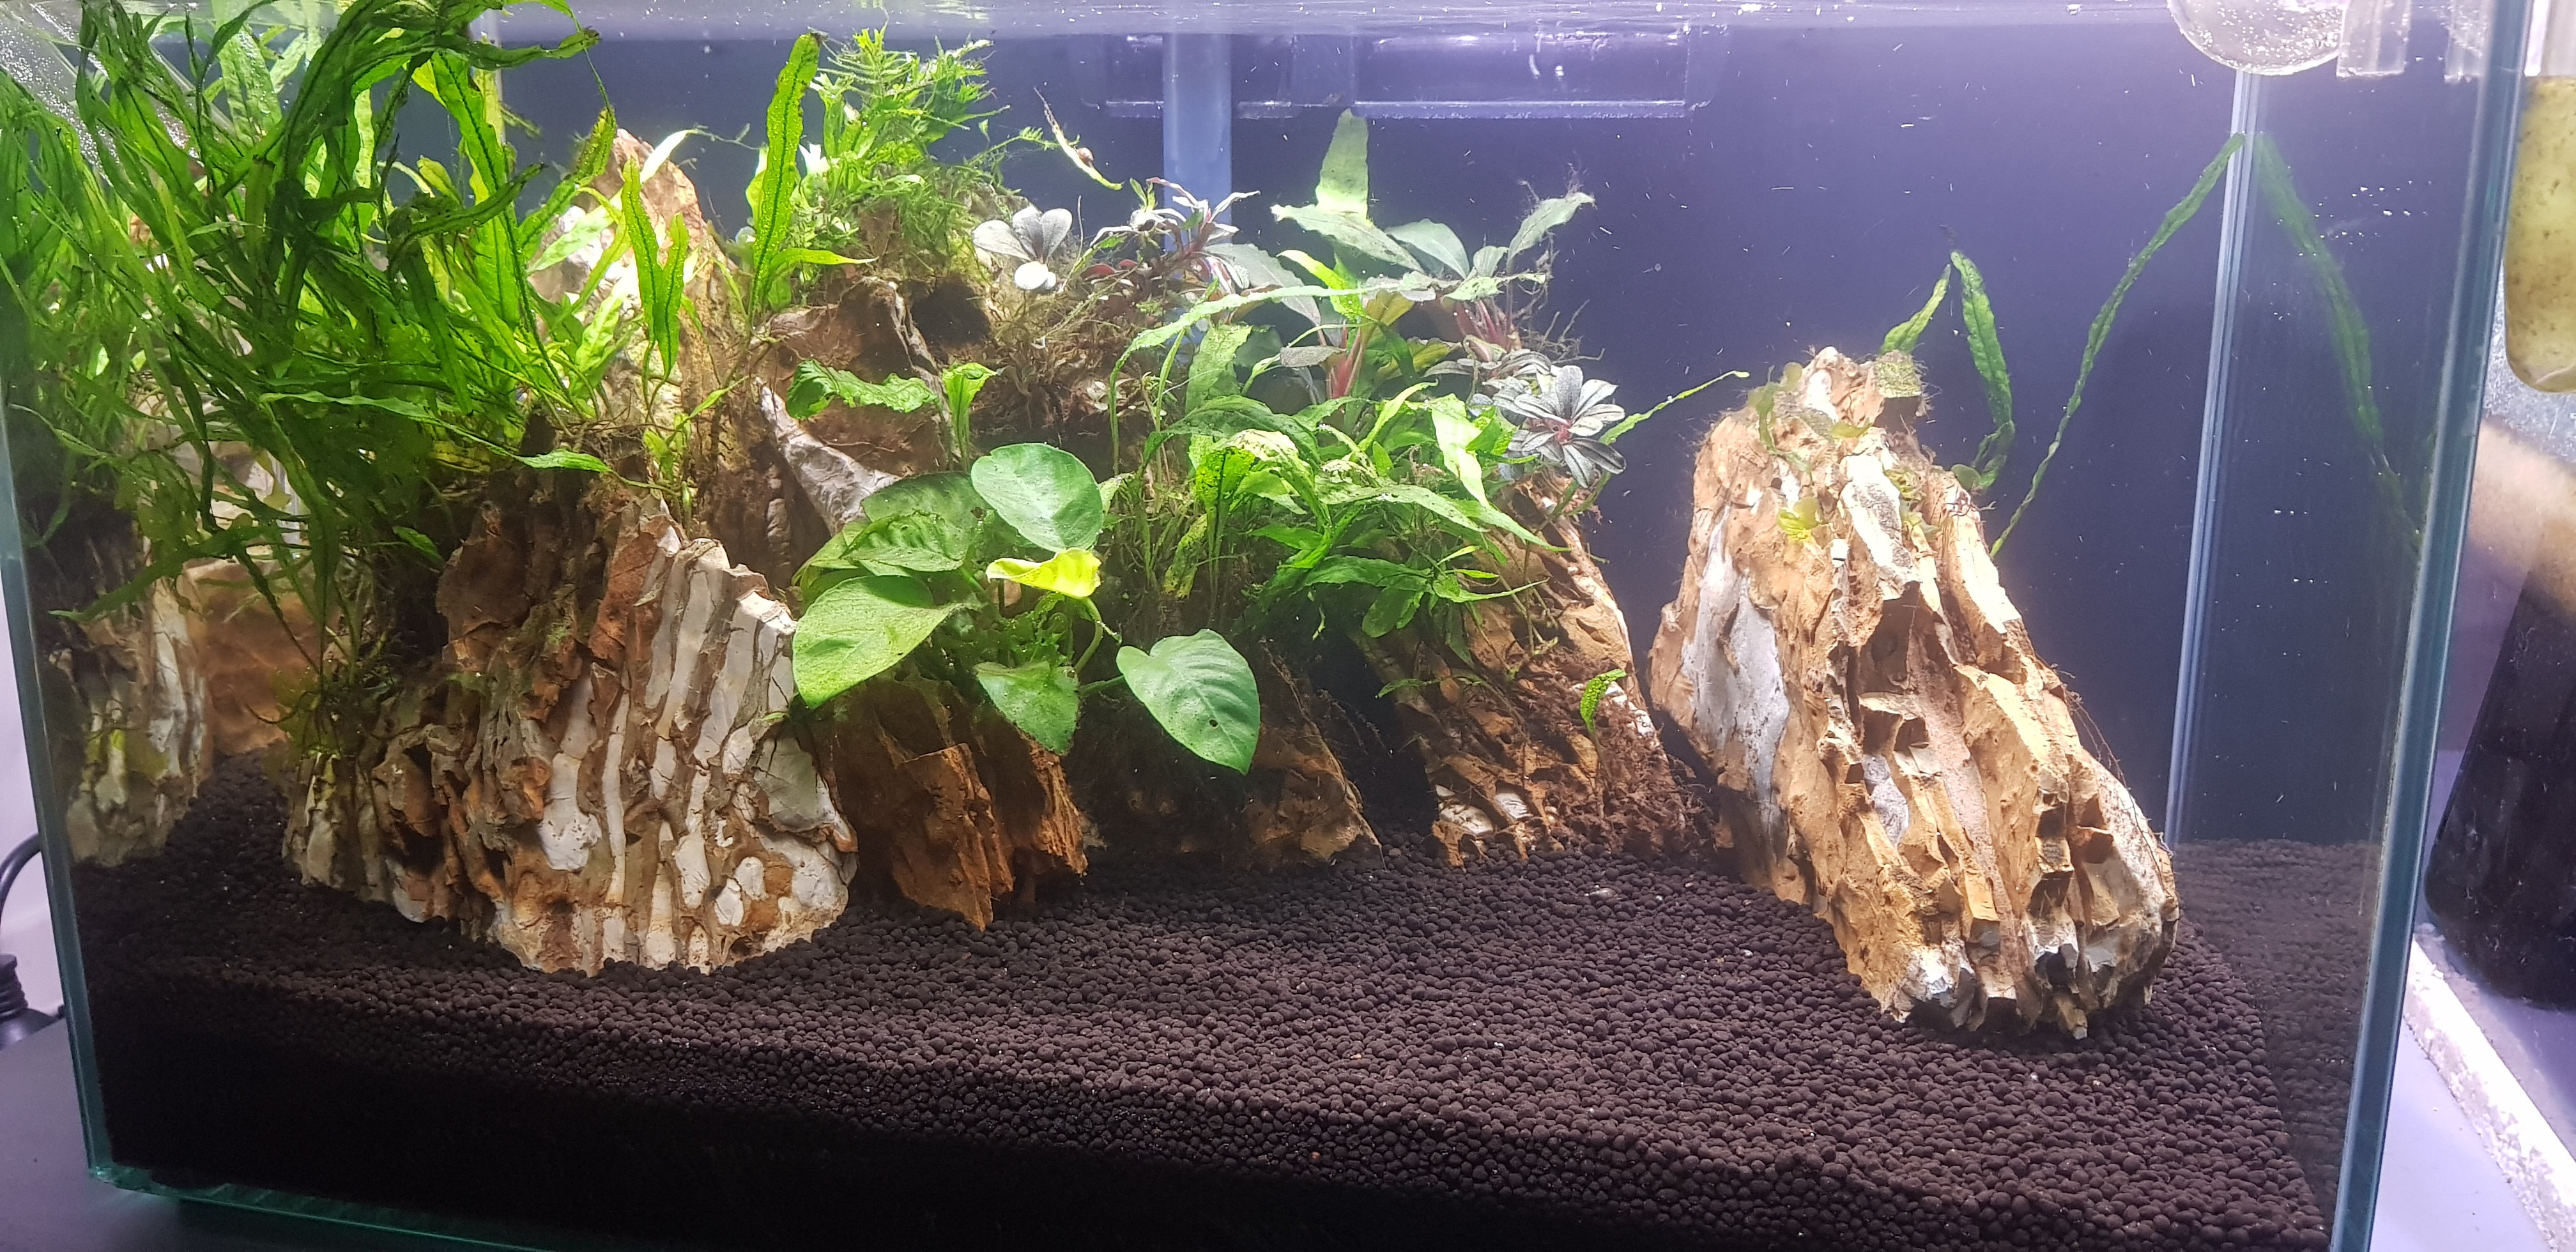 Oliver Knott Substrate Range Review